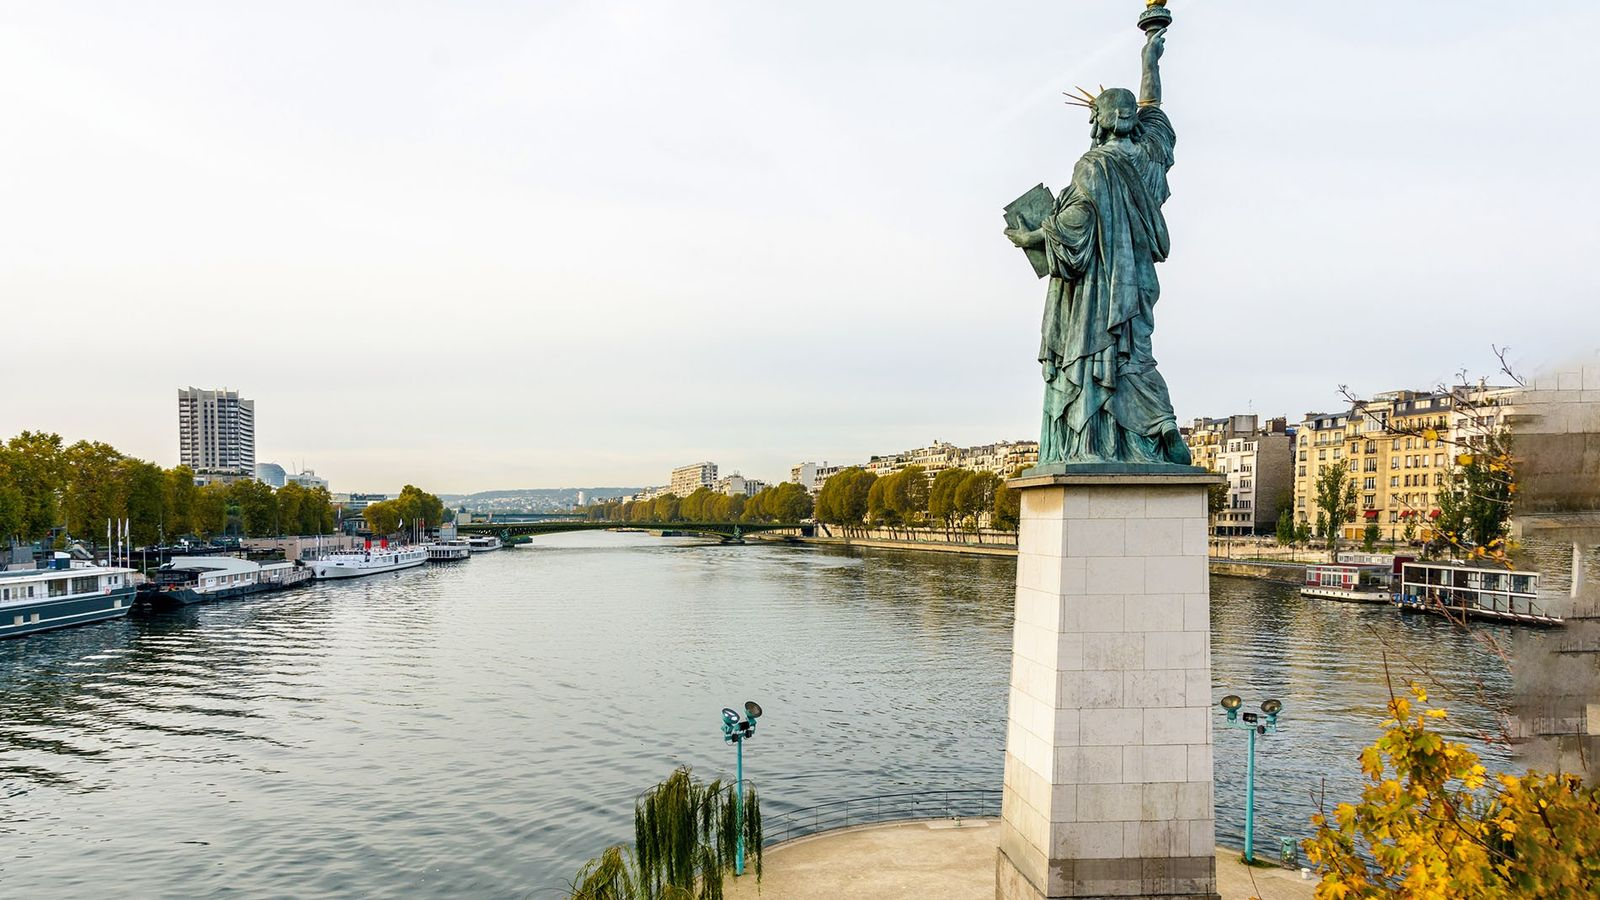 Statue of Liberty overlooking the River Seine